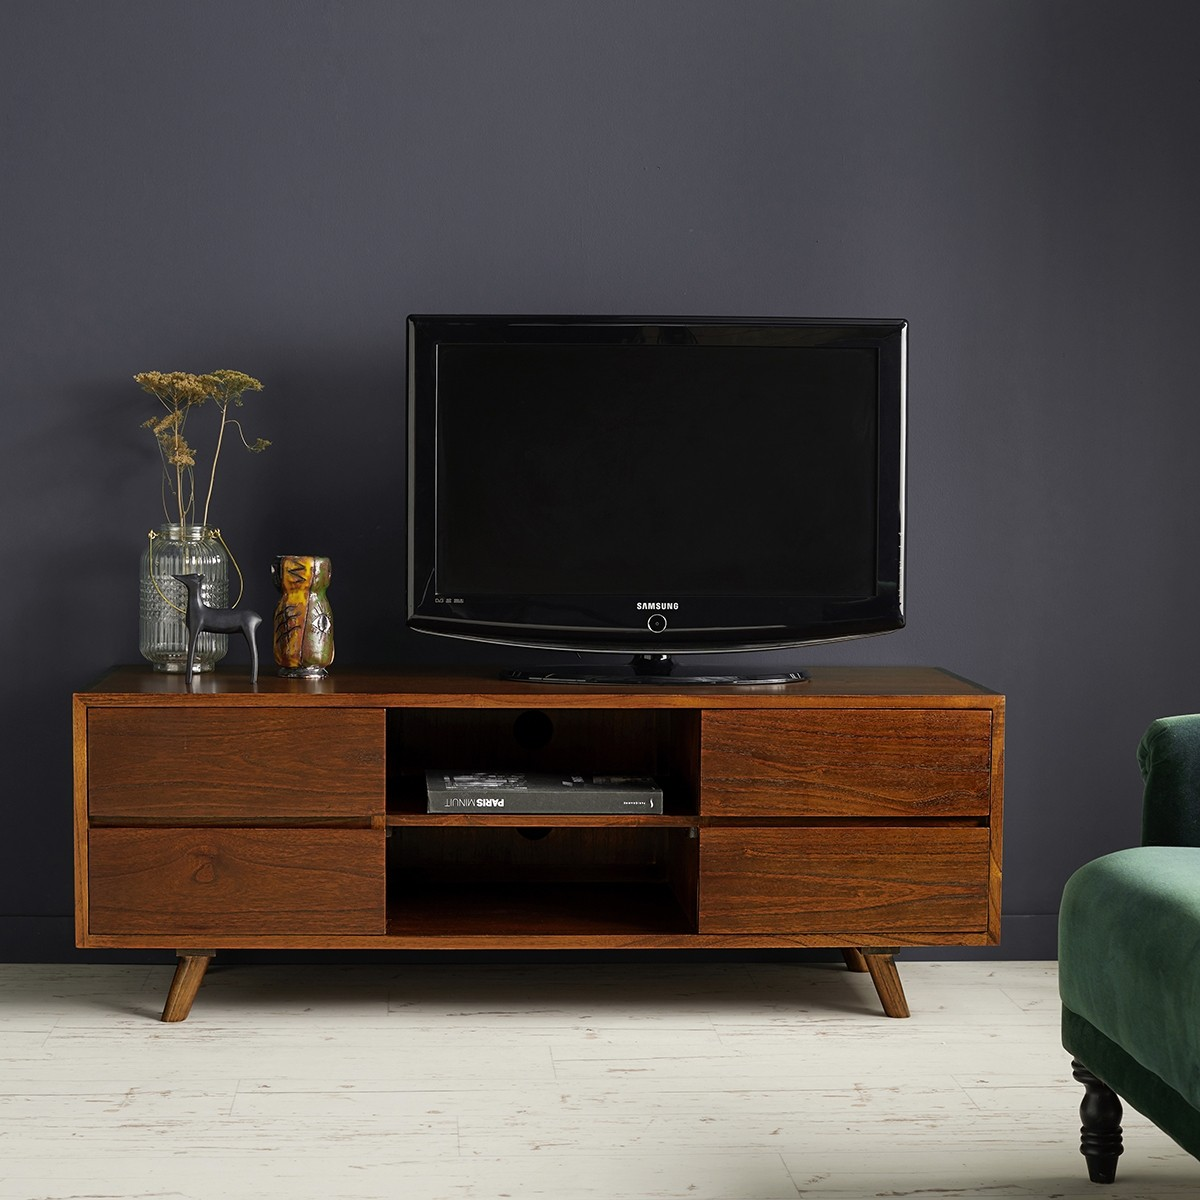 meuble tv en bois finition noyer 140 milo bois dessus bois dessous. Black Bedroom Furniture Sets. Home Design Ideas